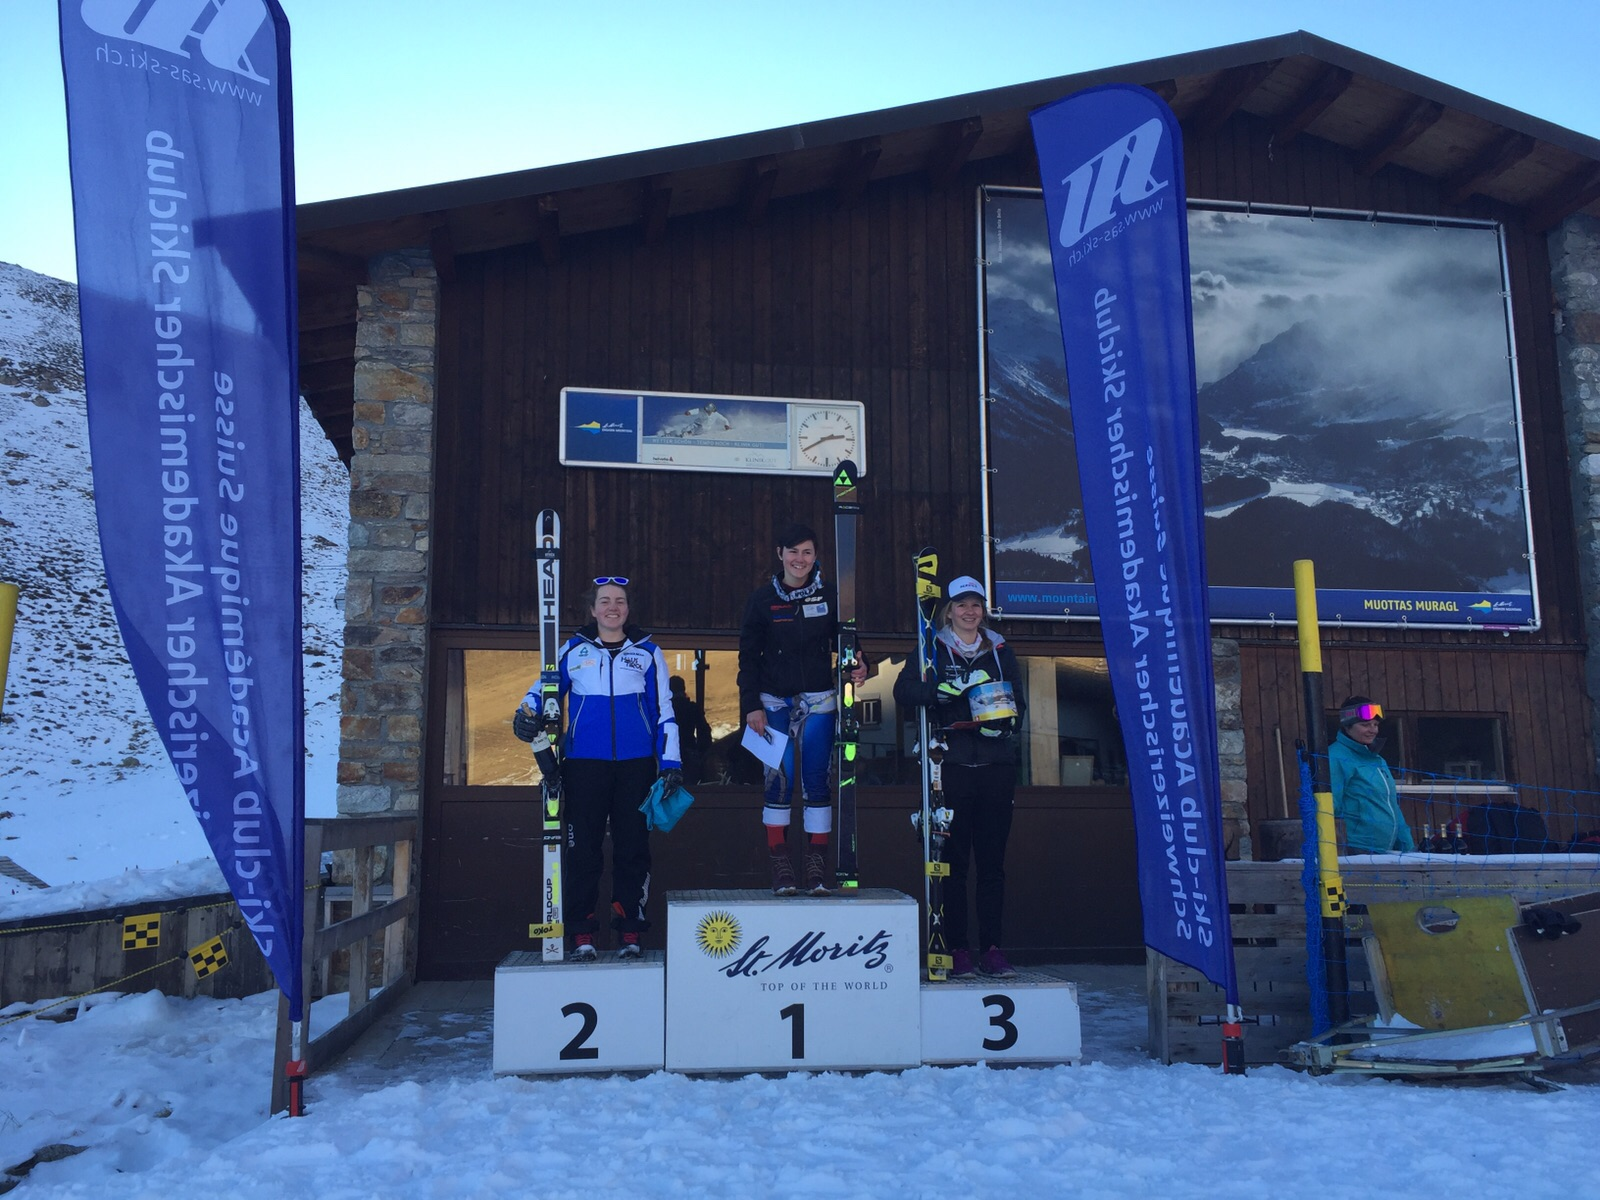 GS: 2nd overall, PB of 32.70 - 2015 University race in St Moritz, Switzerland